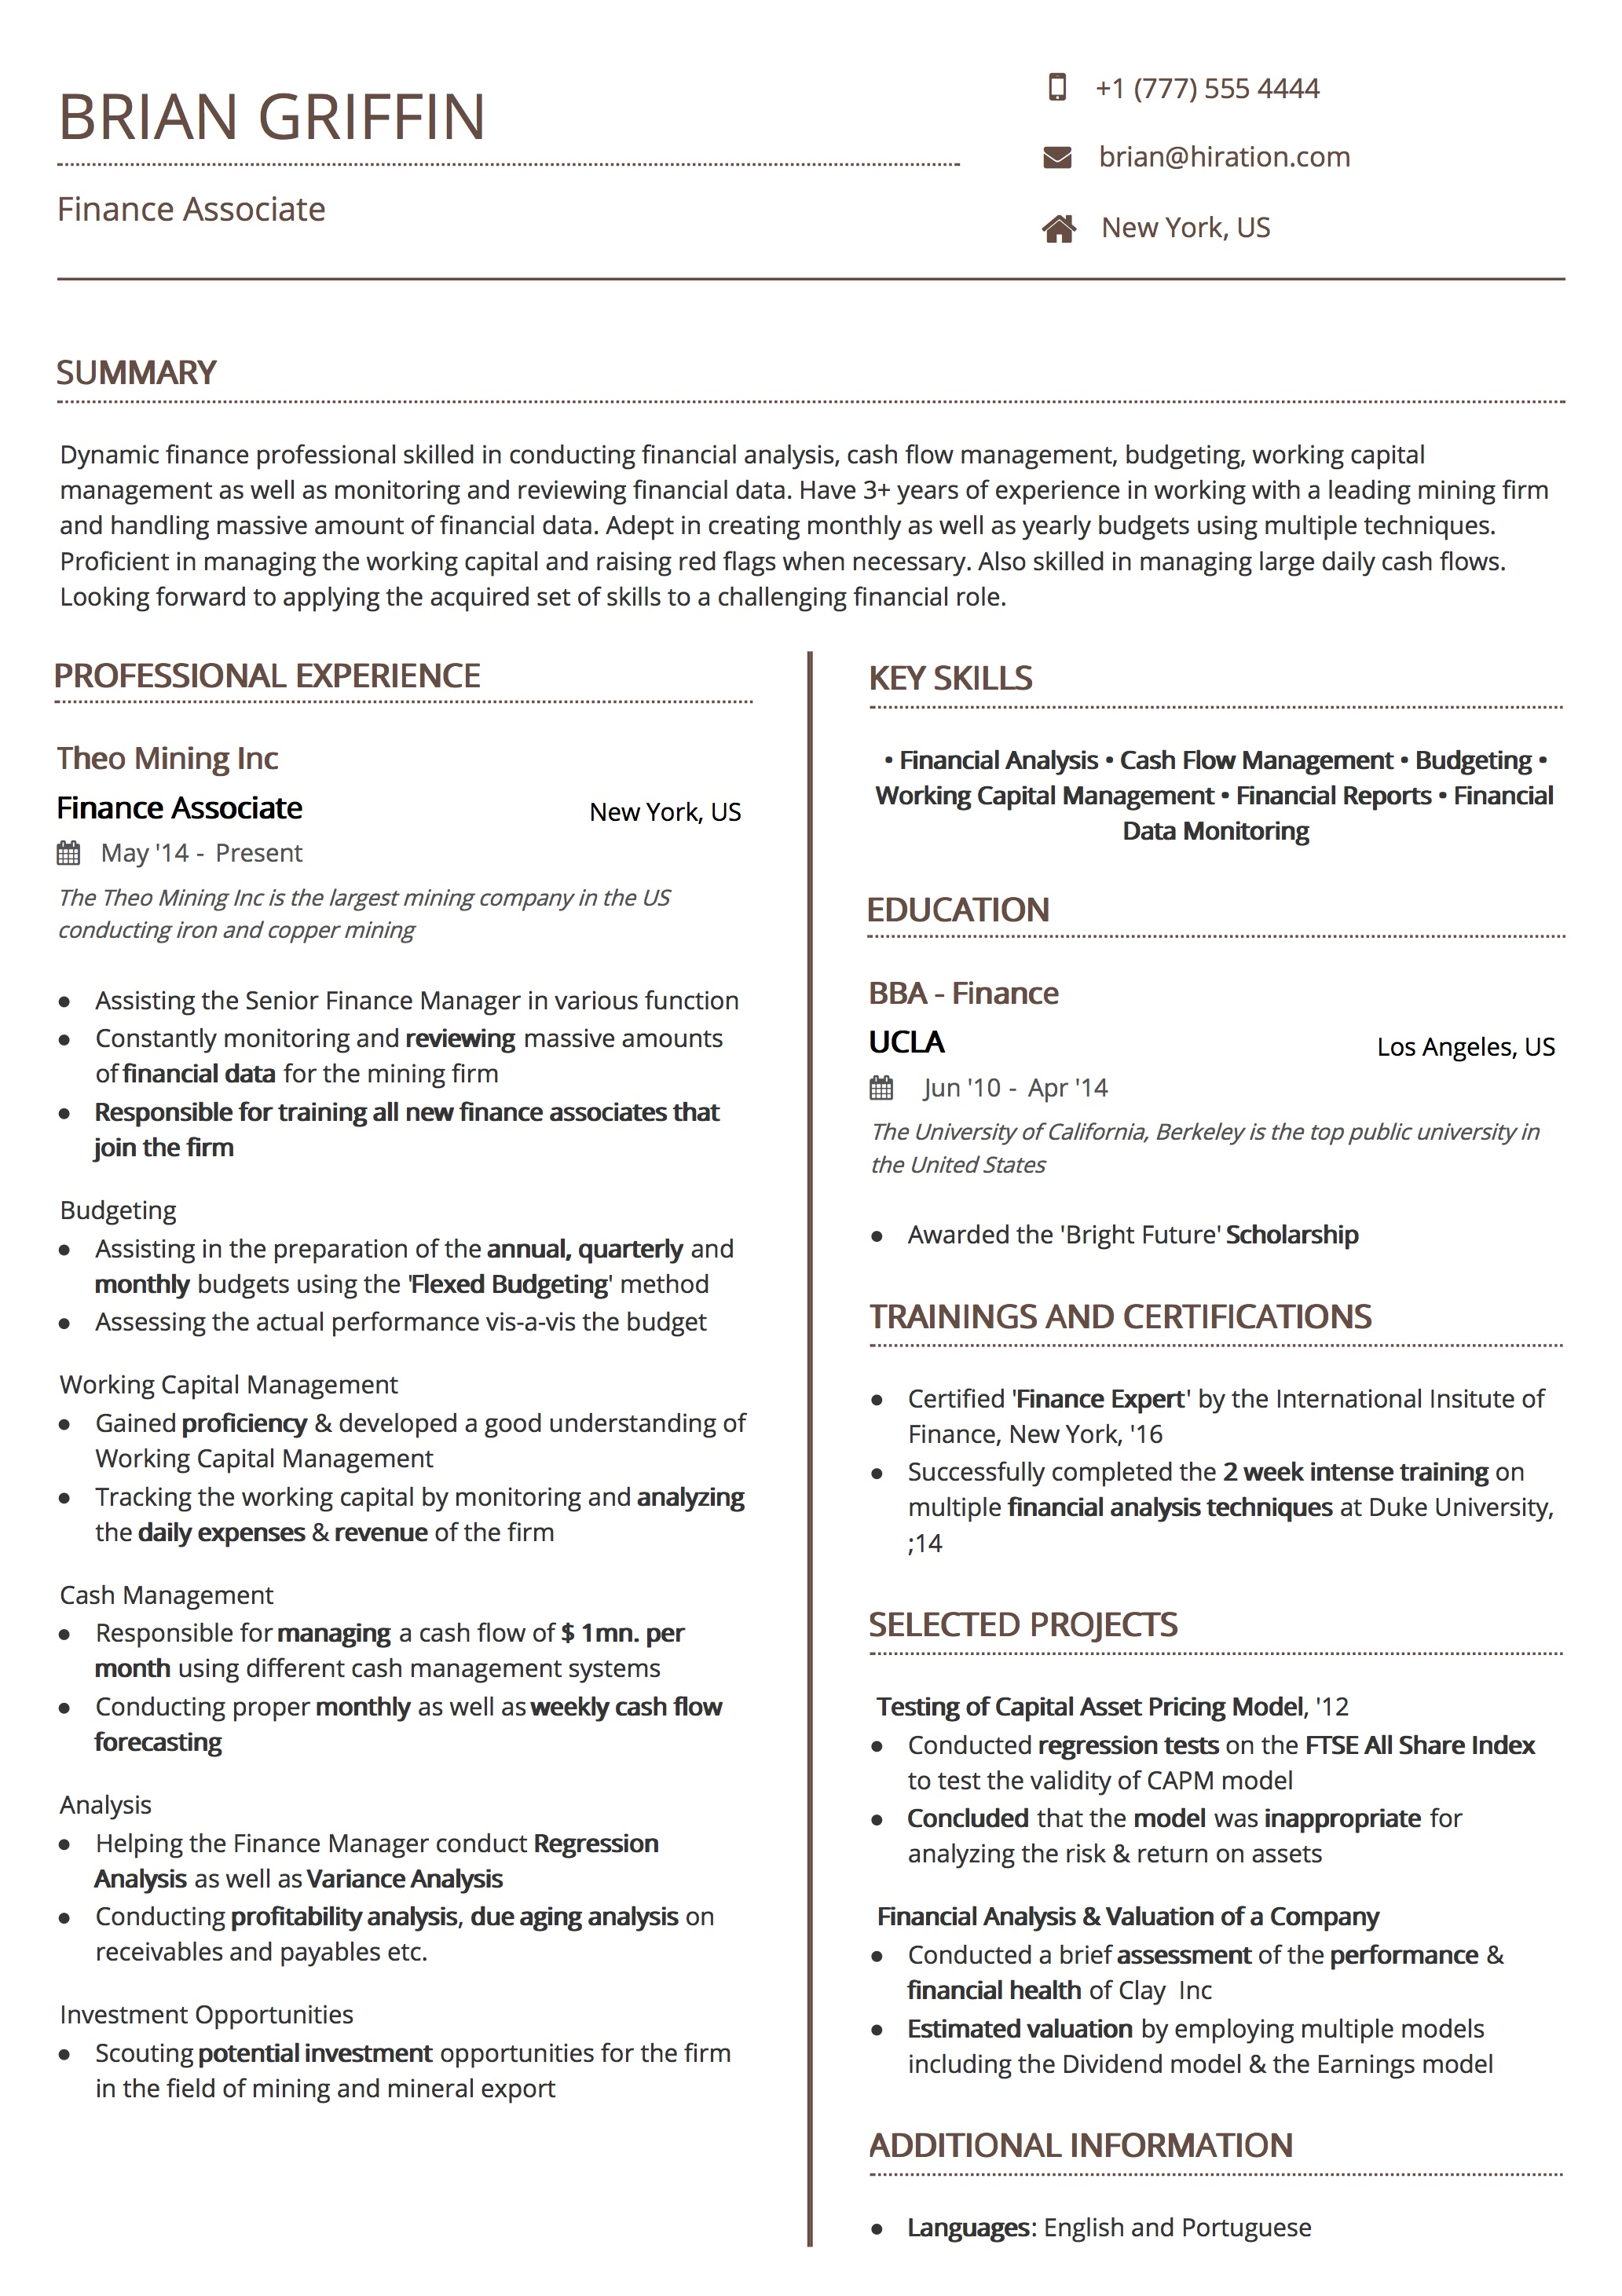 resume template  uniform brown by hiration